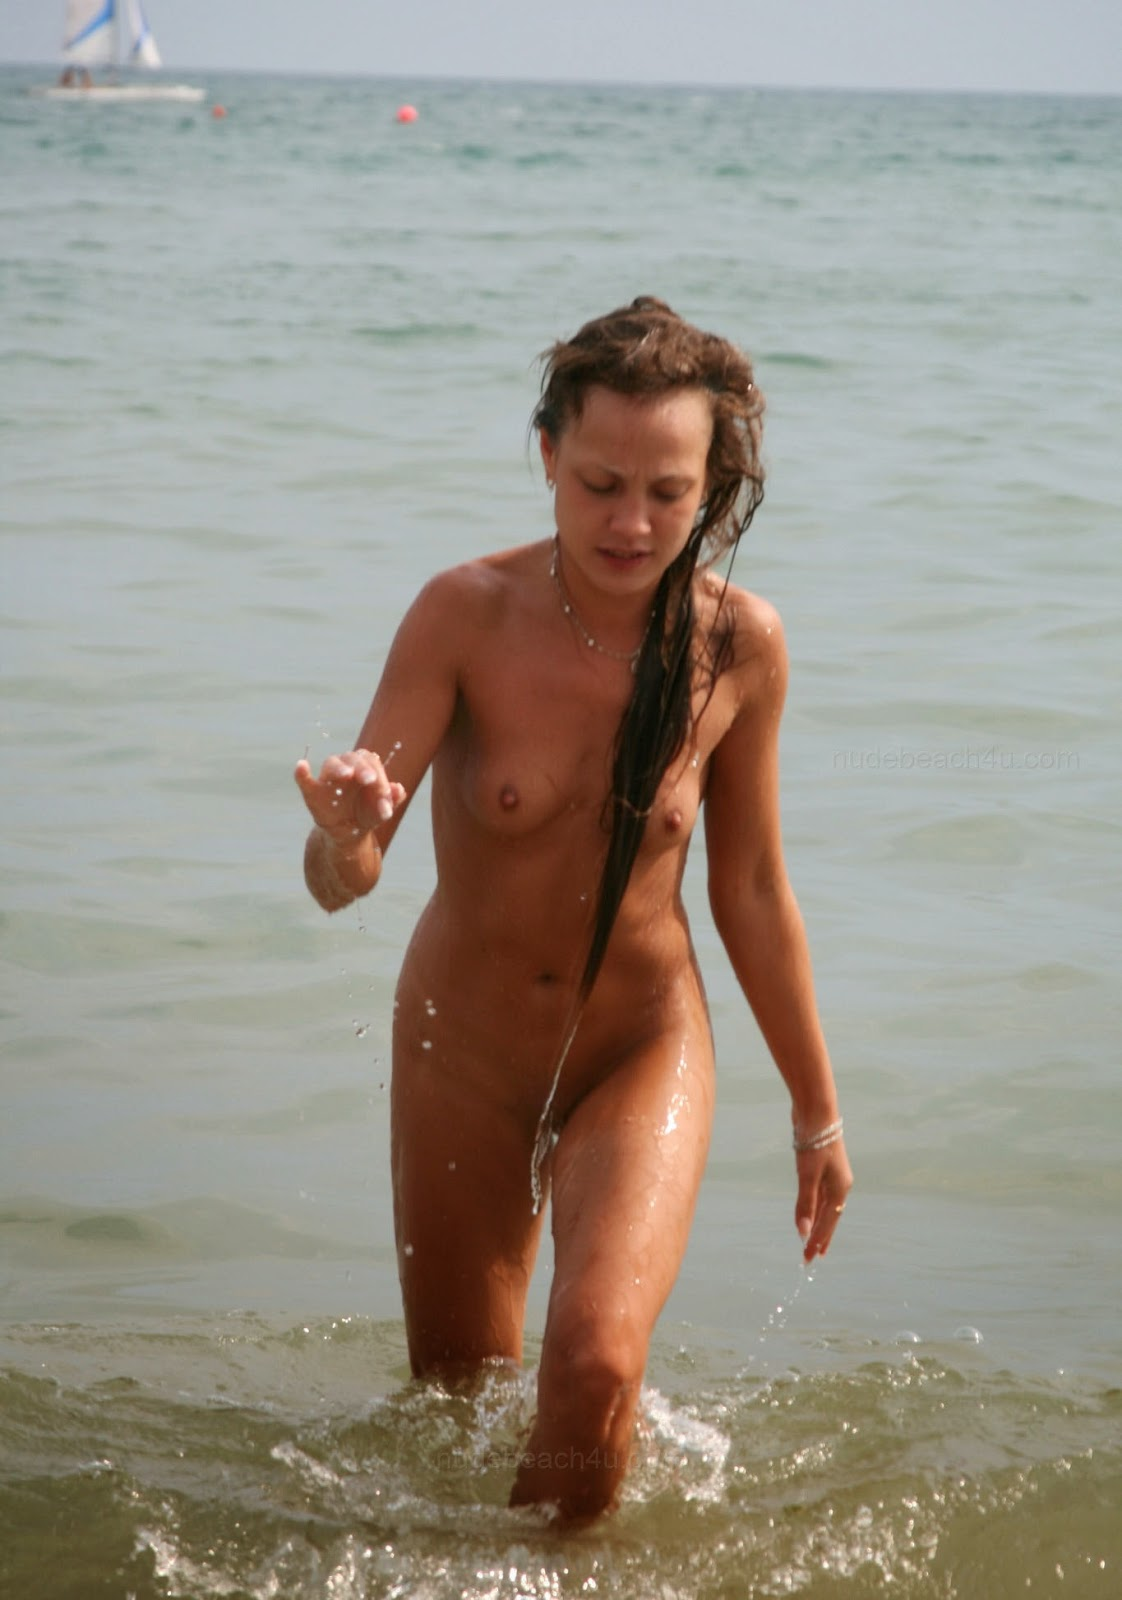 Nudism - Photo - Hq  Nudists Teens - Crimea Nude Beach - Rus-8354